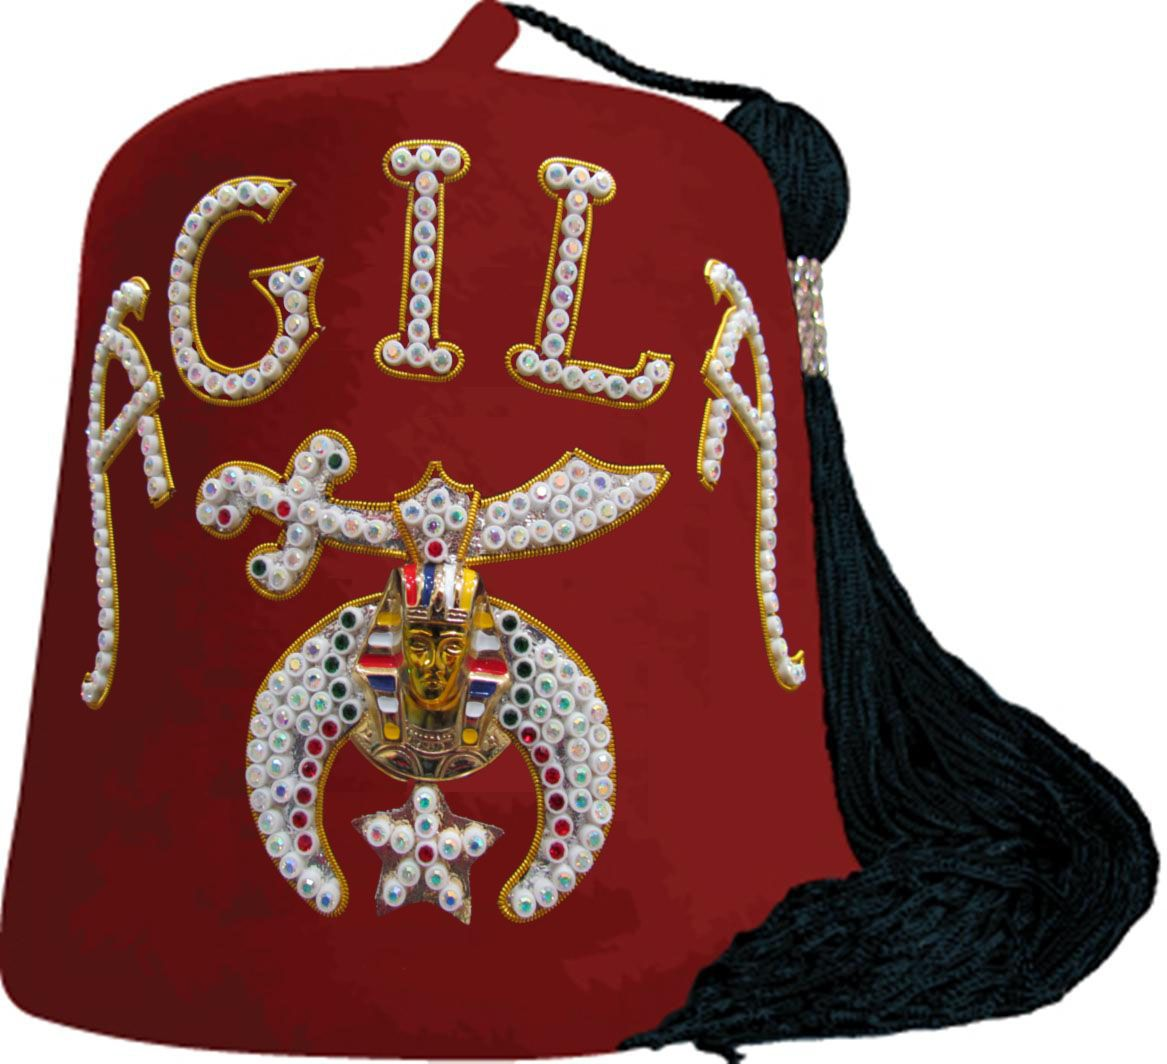 Mead Artworks Embroidery Design: Large Shriner Fez 7.50 inches H x ...